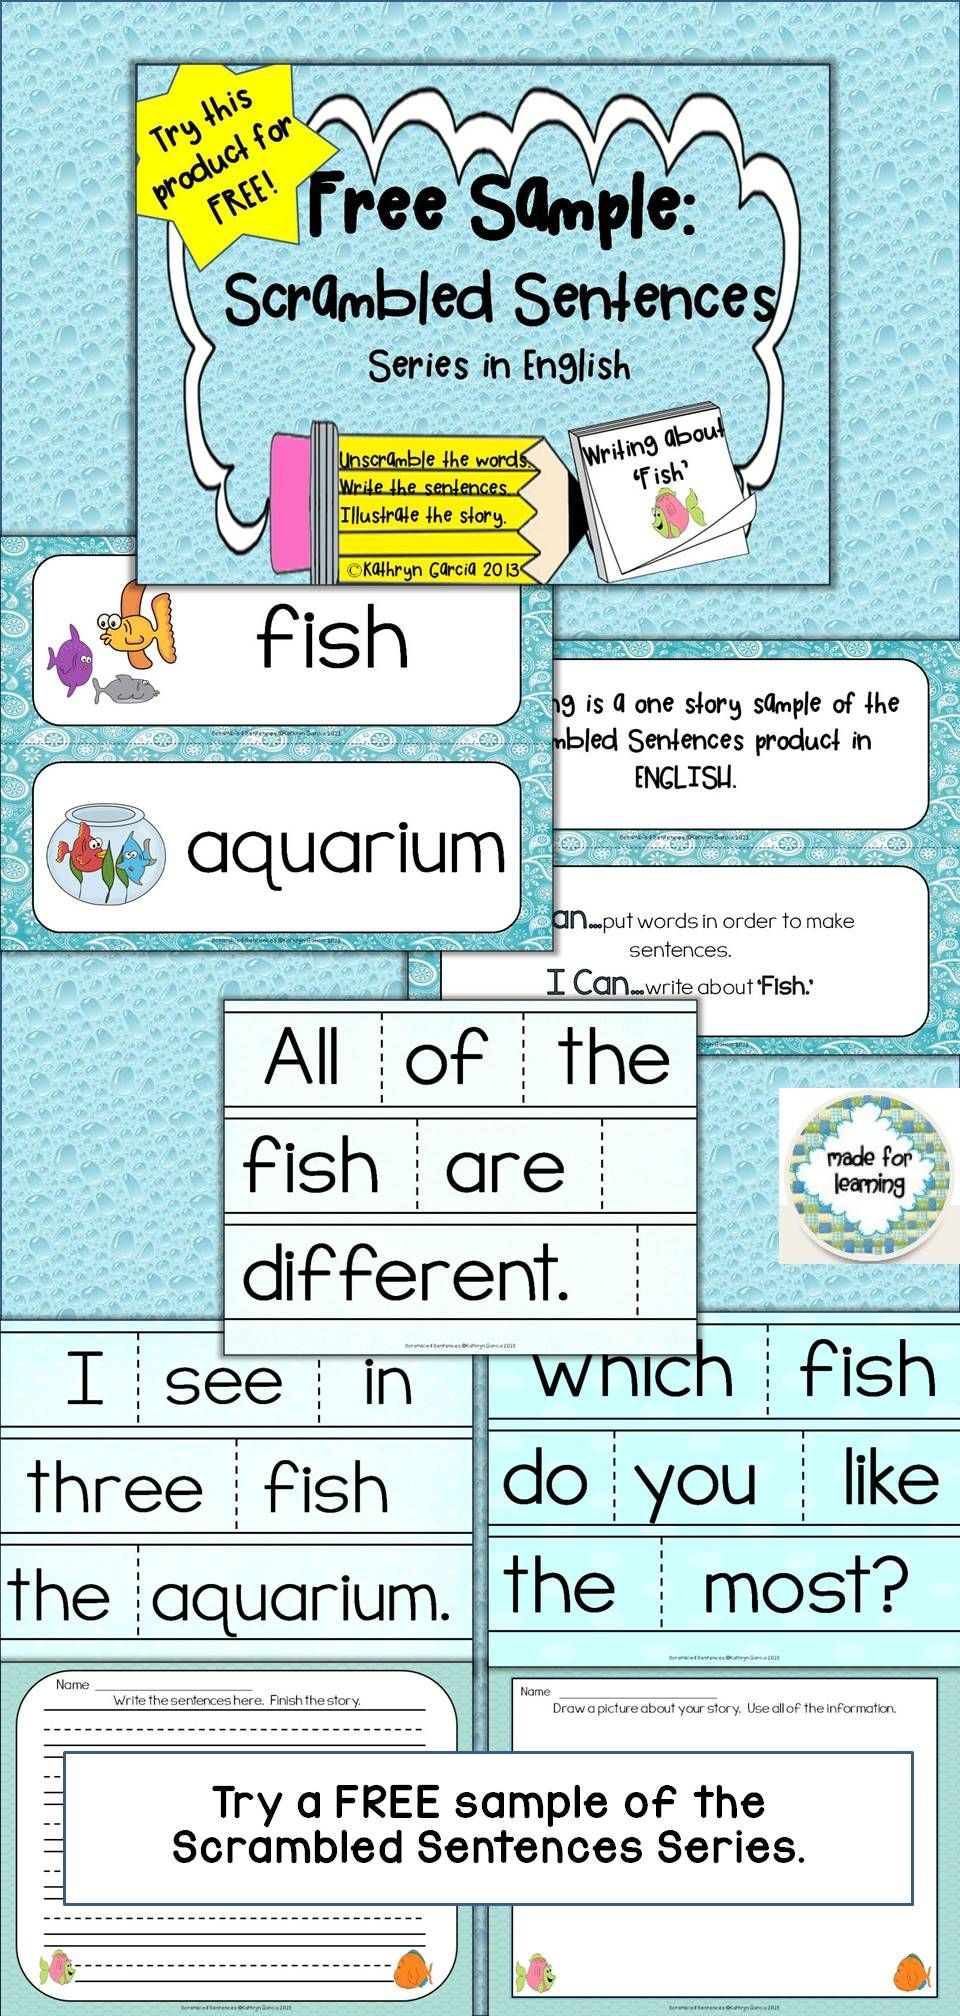 This free scrambled sentences activity includes 3 sentences to be unscrambled to create a story that